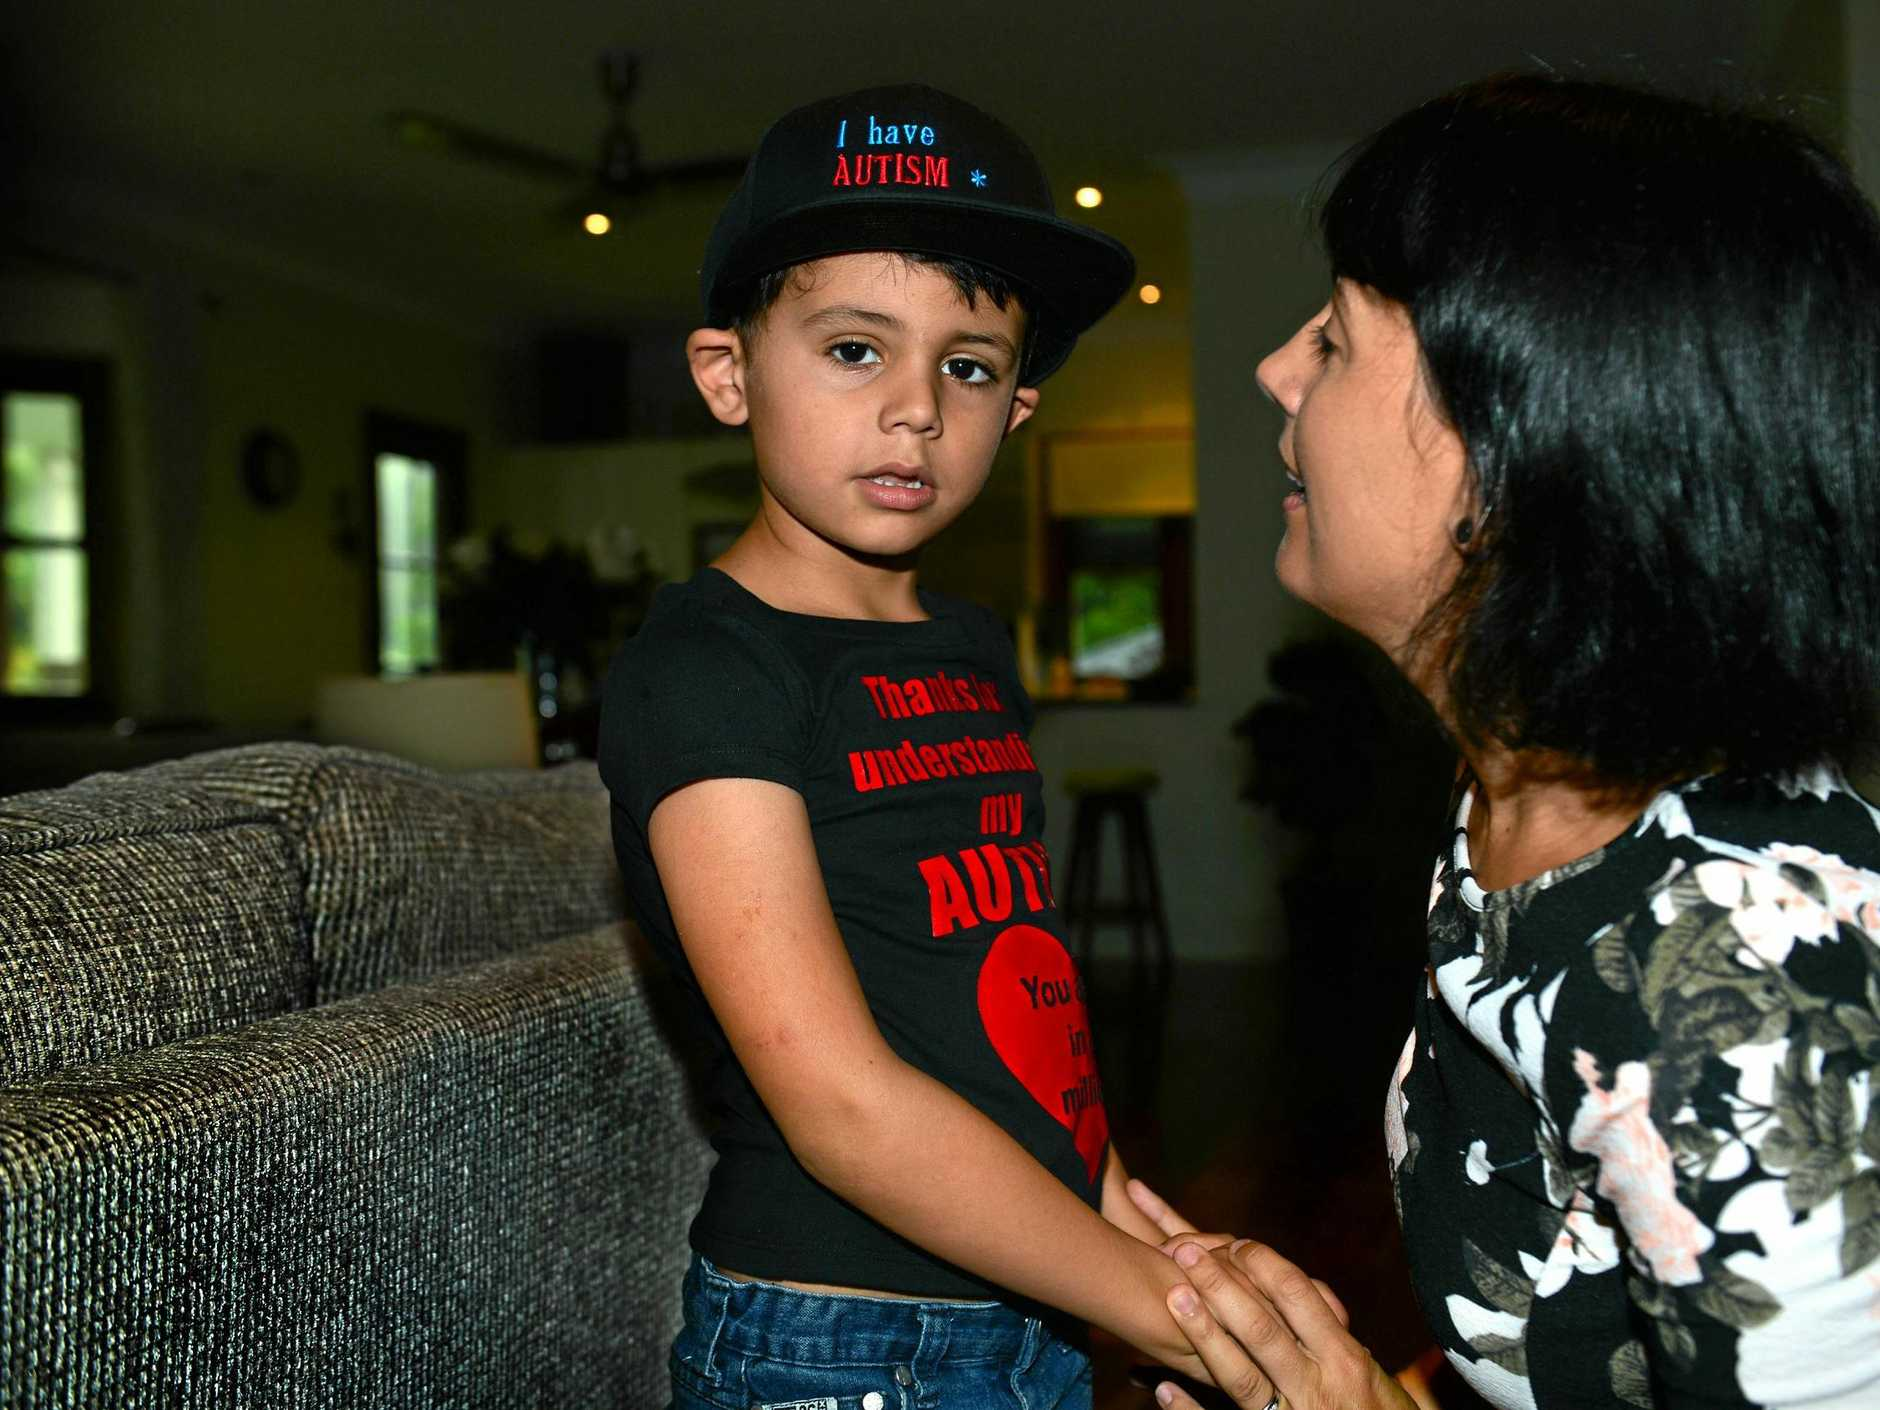 Ollie Sklenars and his mum Durrelle who designs t-shirts and other wear to increase awareness of autism.